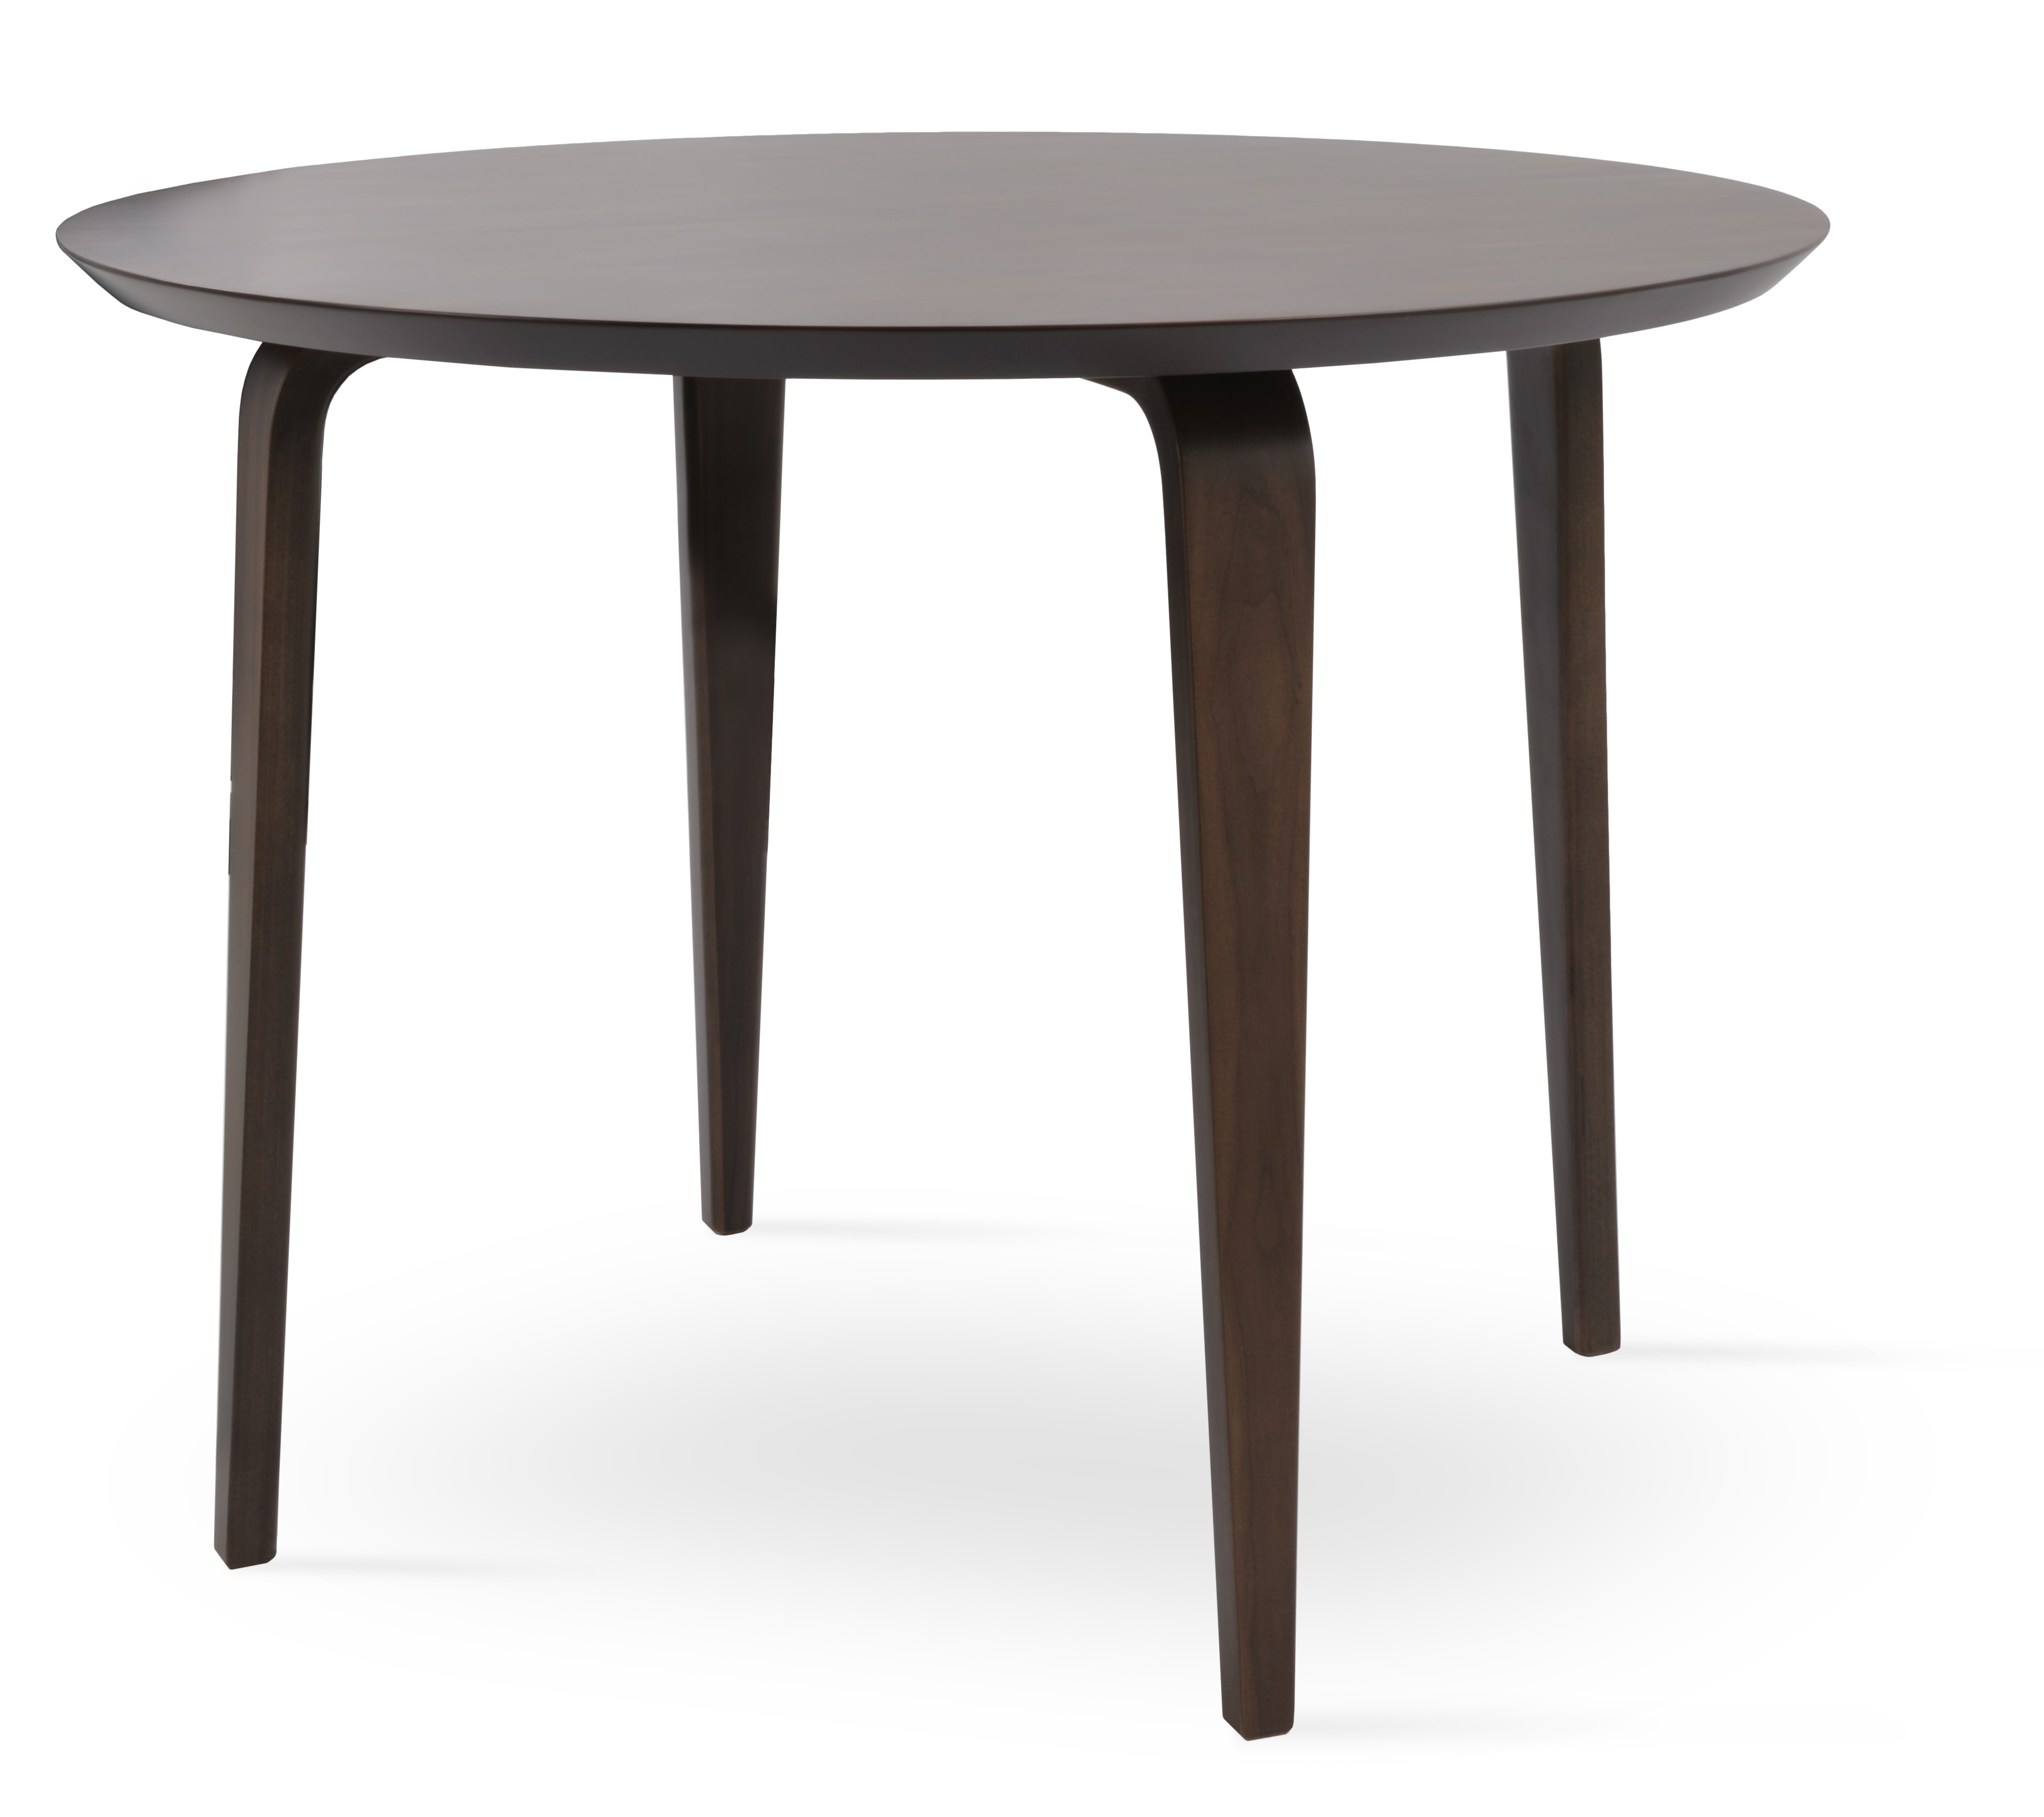 Chanelle Dining Table Euroform Contract Furniture